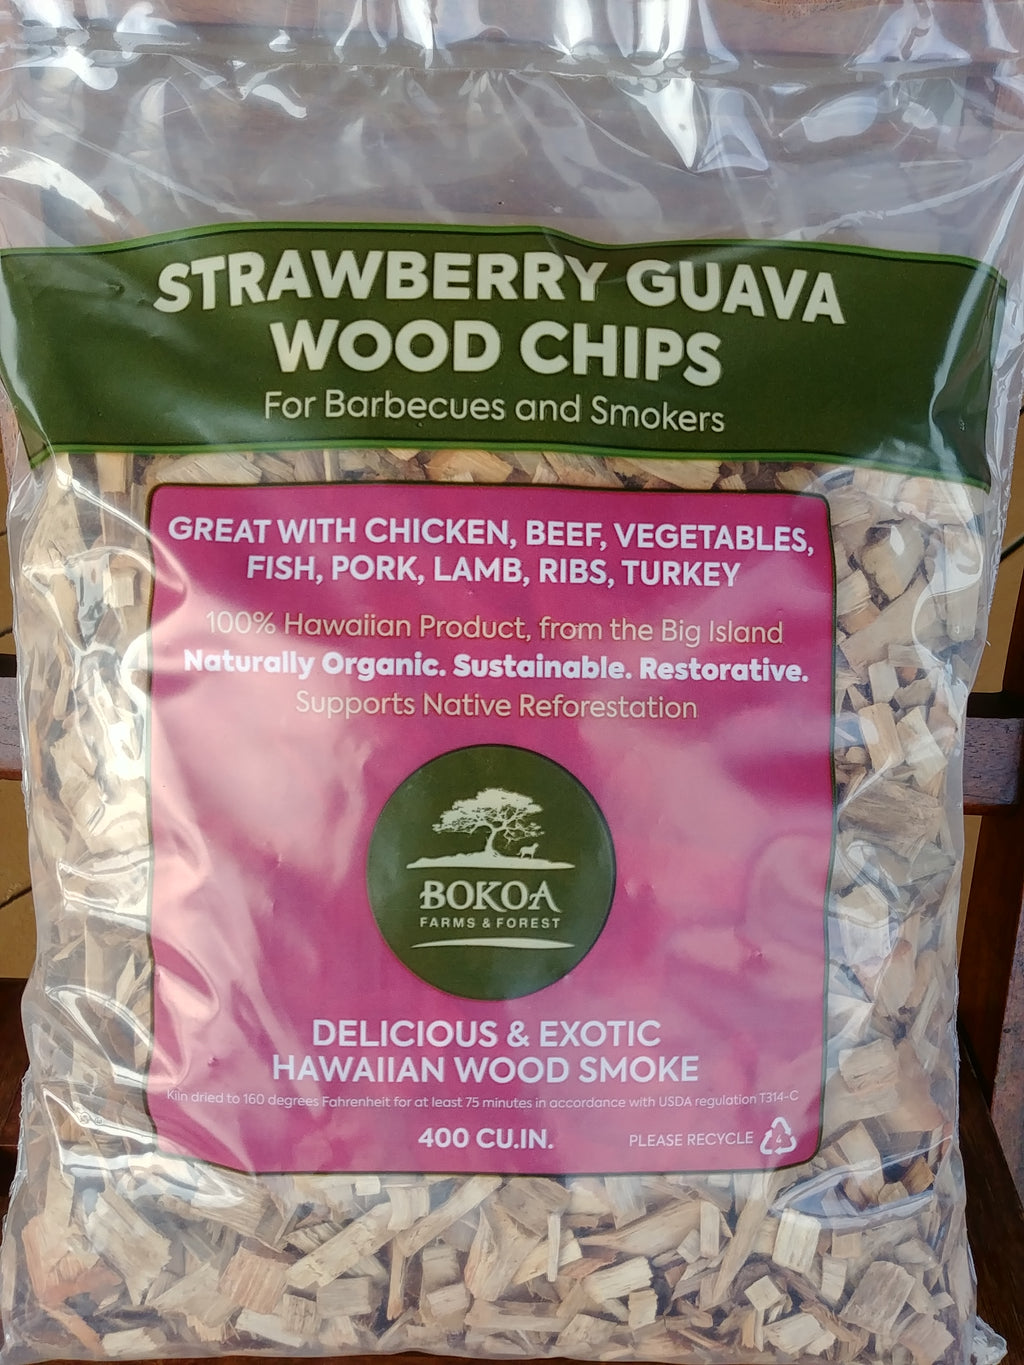 Strawberry Guava Wood Chips - 400 CU. IN.